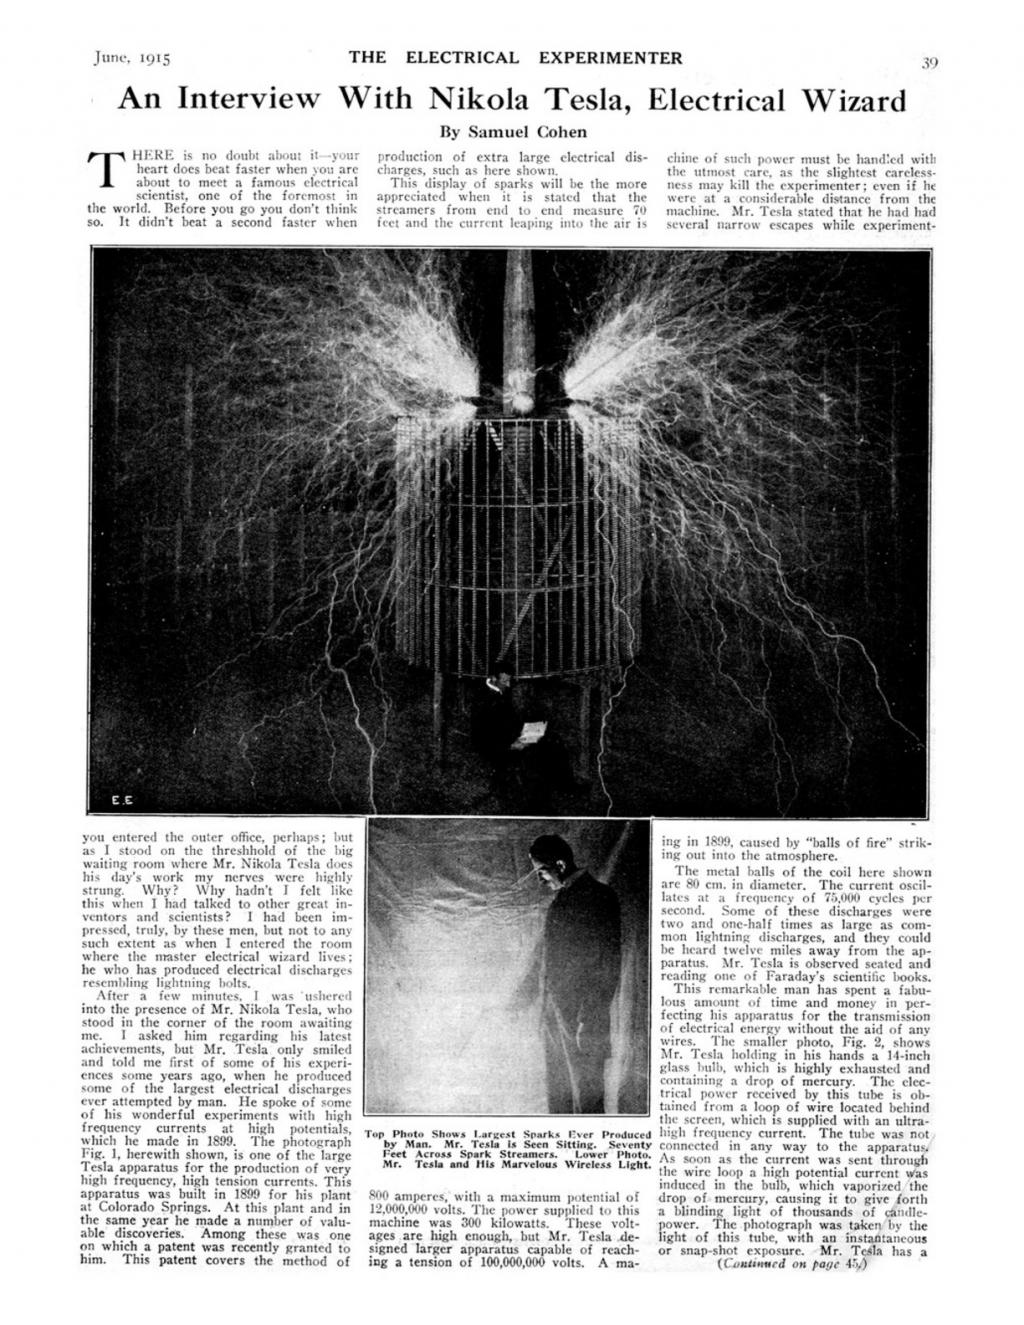 Preview of An Interview With Nikola Tesla, Electrical Wizard article